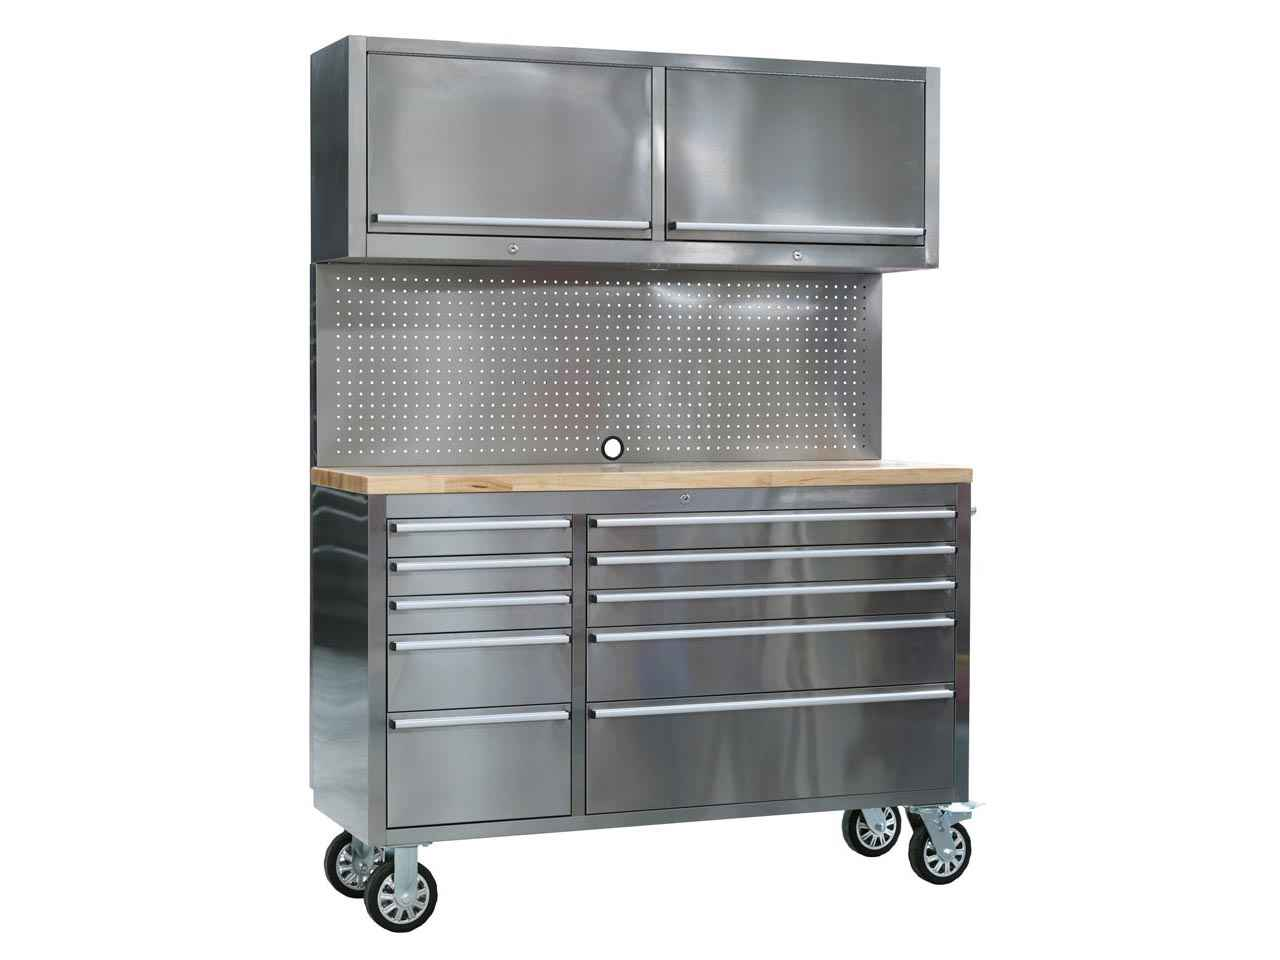 Sealey AP5520SS Mobile Stainless Steel Tool Cabinet 10 Drawer with Backboard u0026 2 Wall Cupboards  sc 1 st  FFX & Sealey AP5520SS Mobile Stainless Steel Tool Cabinet 10 Drawer with ...